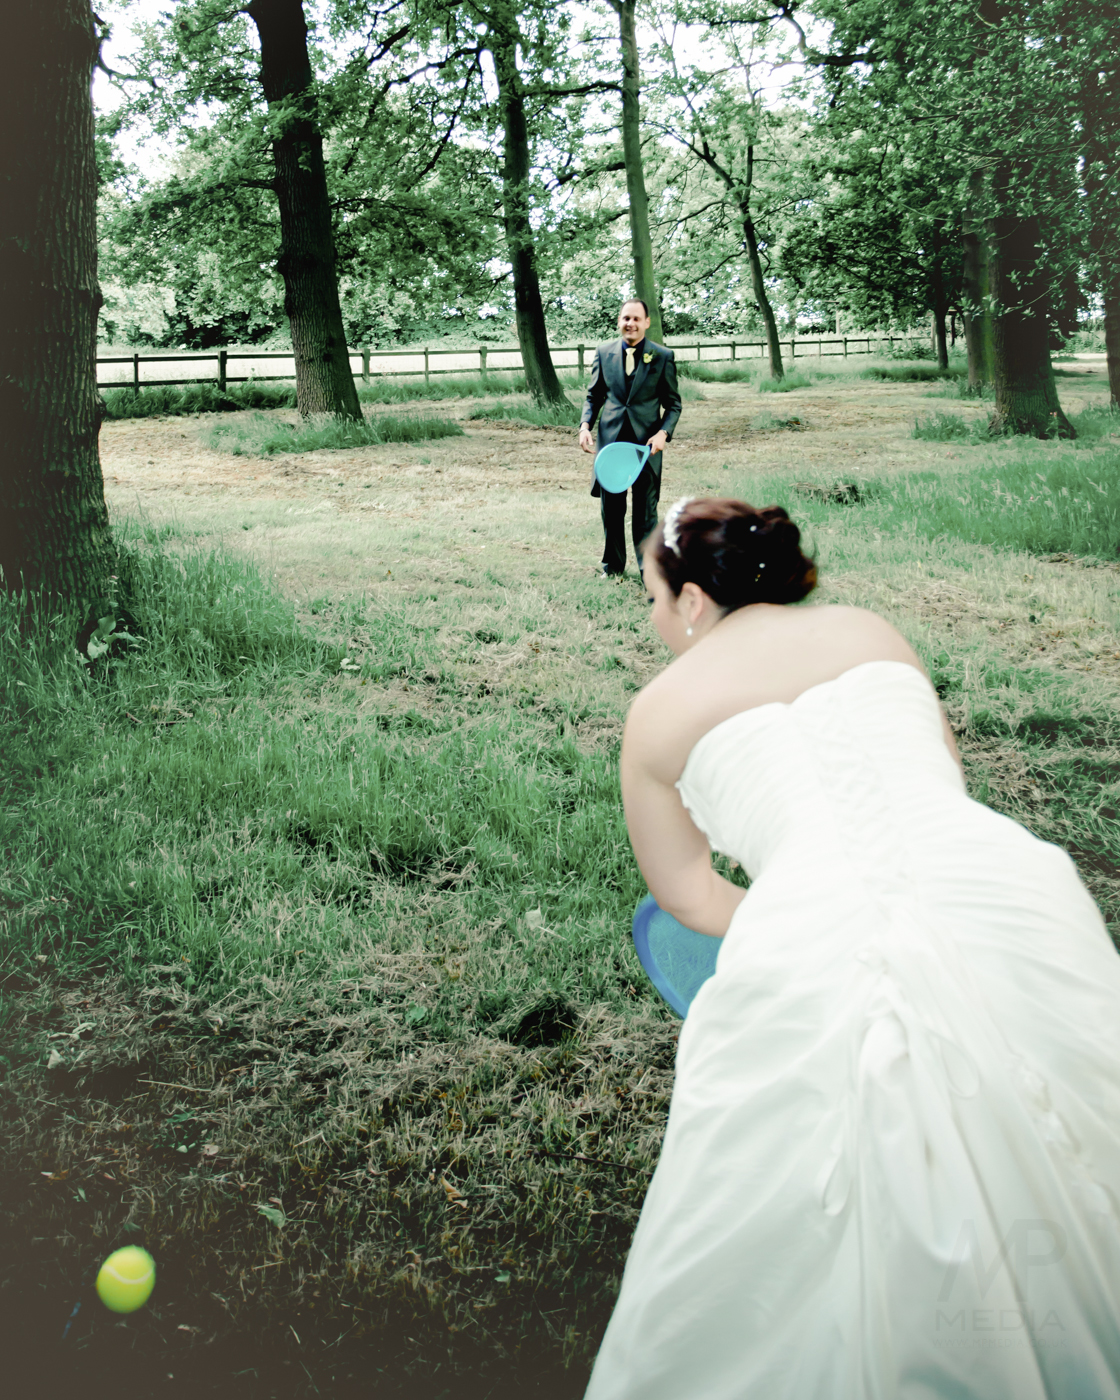 574 - Chris and Natalies Wedding (MAIN) - DO NOT SHARE THIS IMAGES ONLINE -0944.JPG